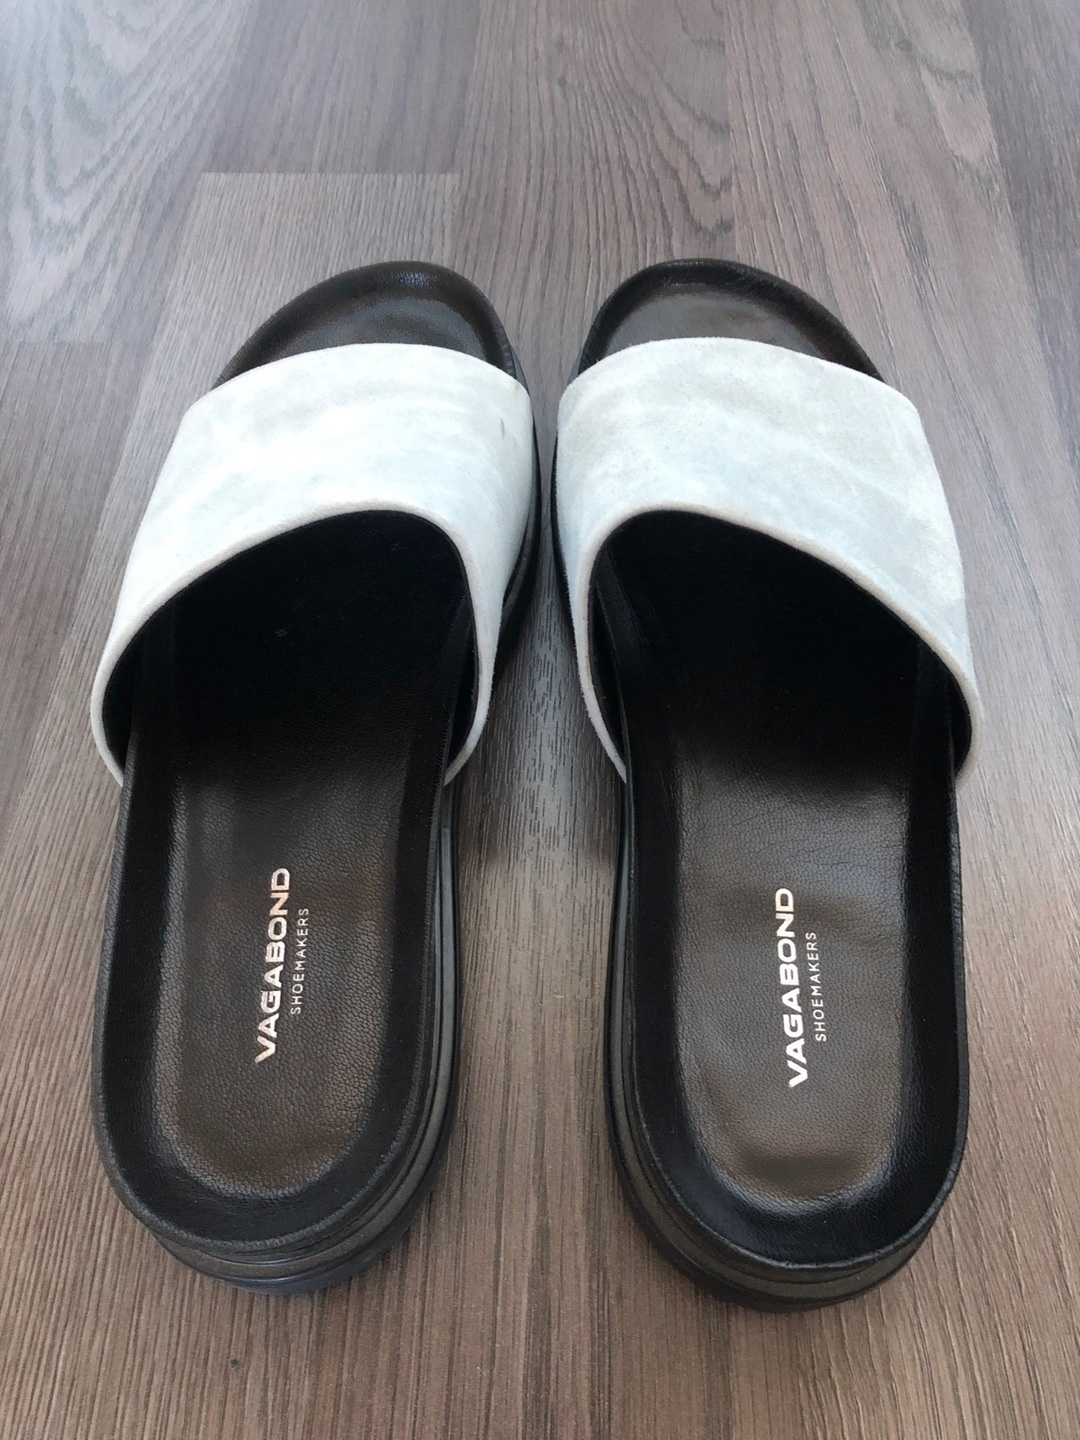 Women's sandals & slippers - VAGABOND photo 3